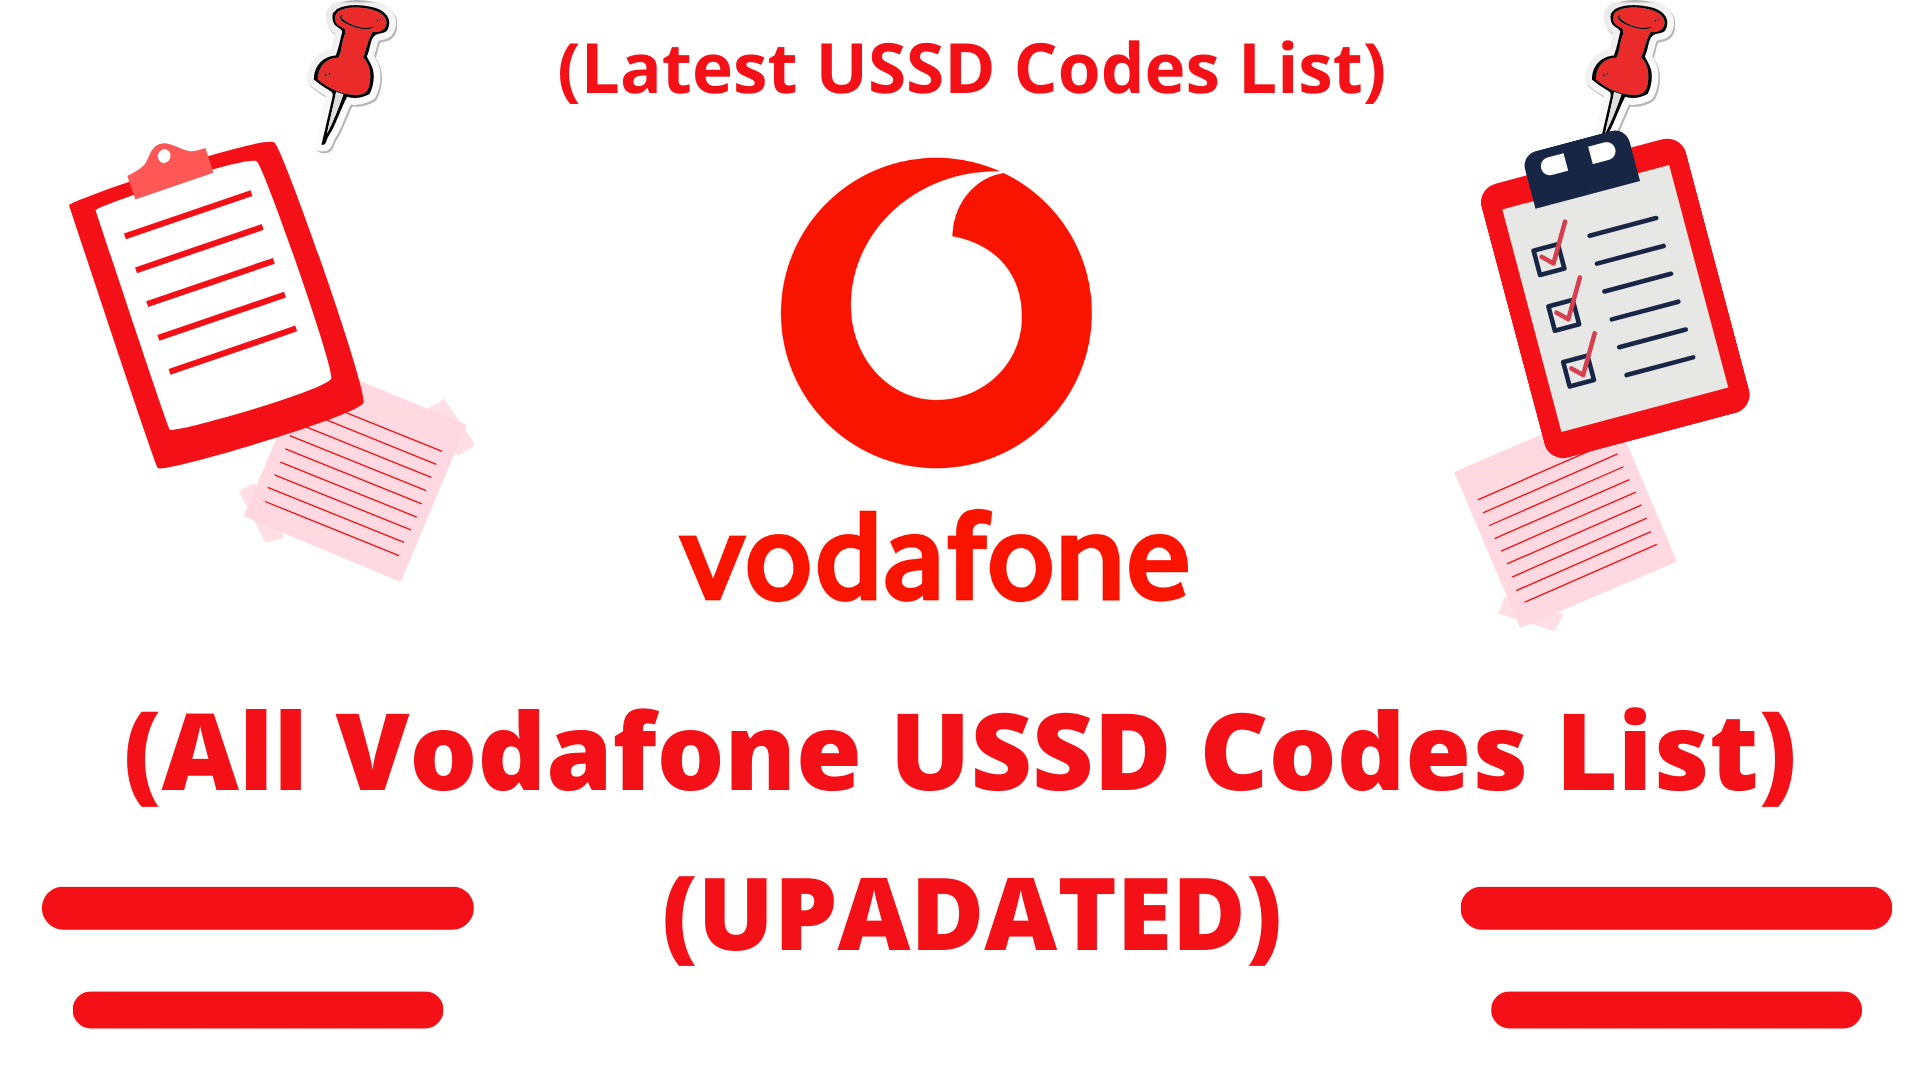 Vodafone USSD Codes List